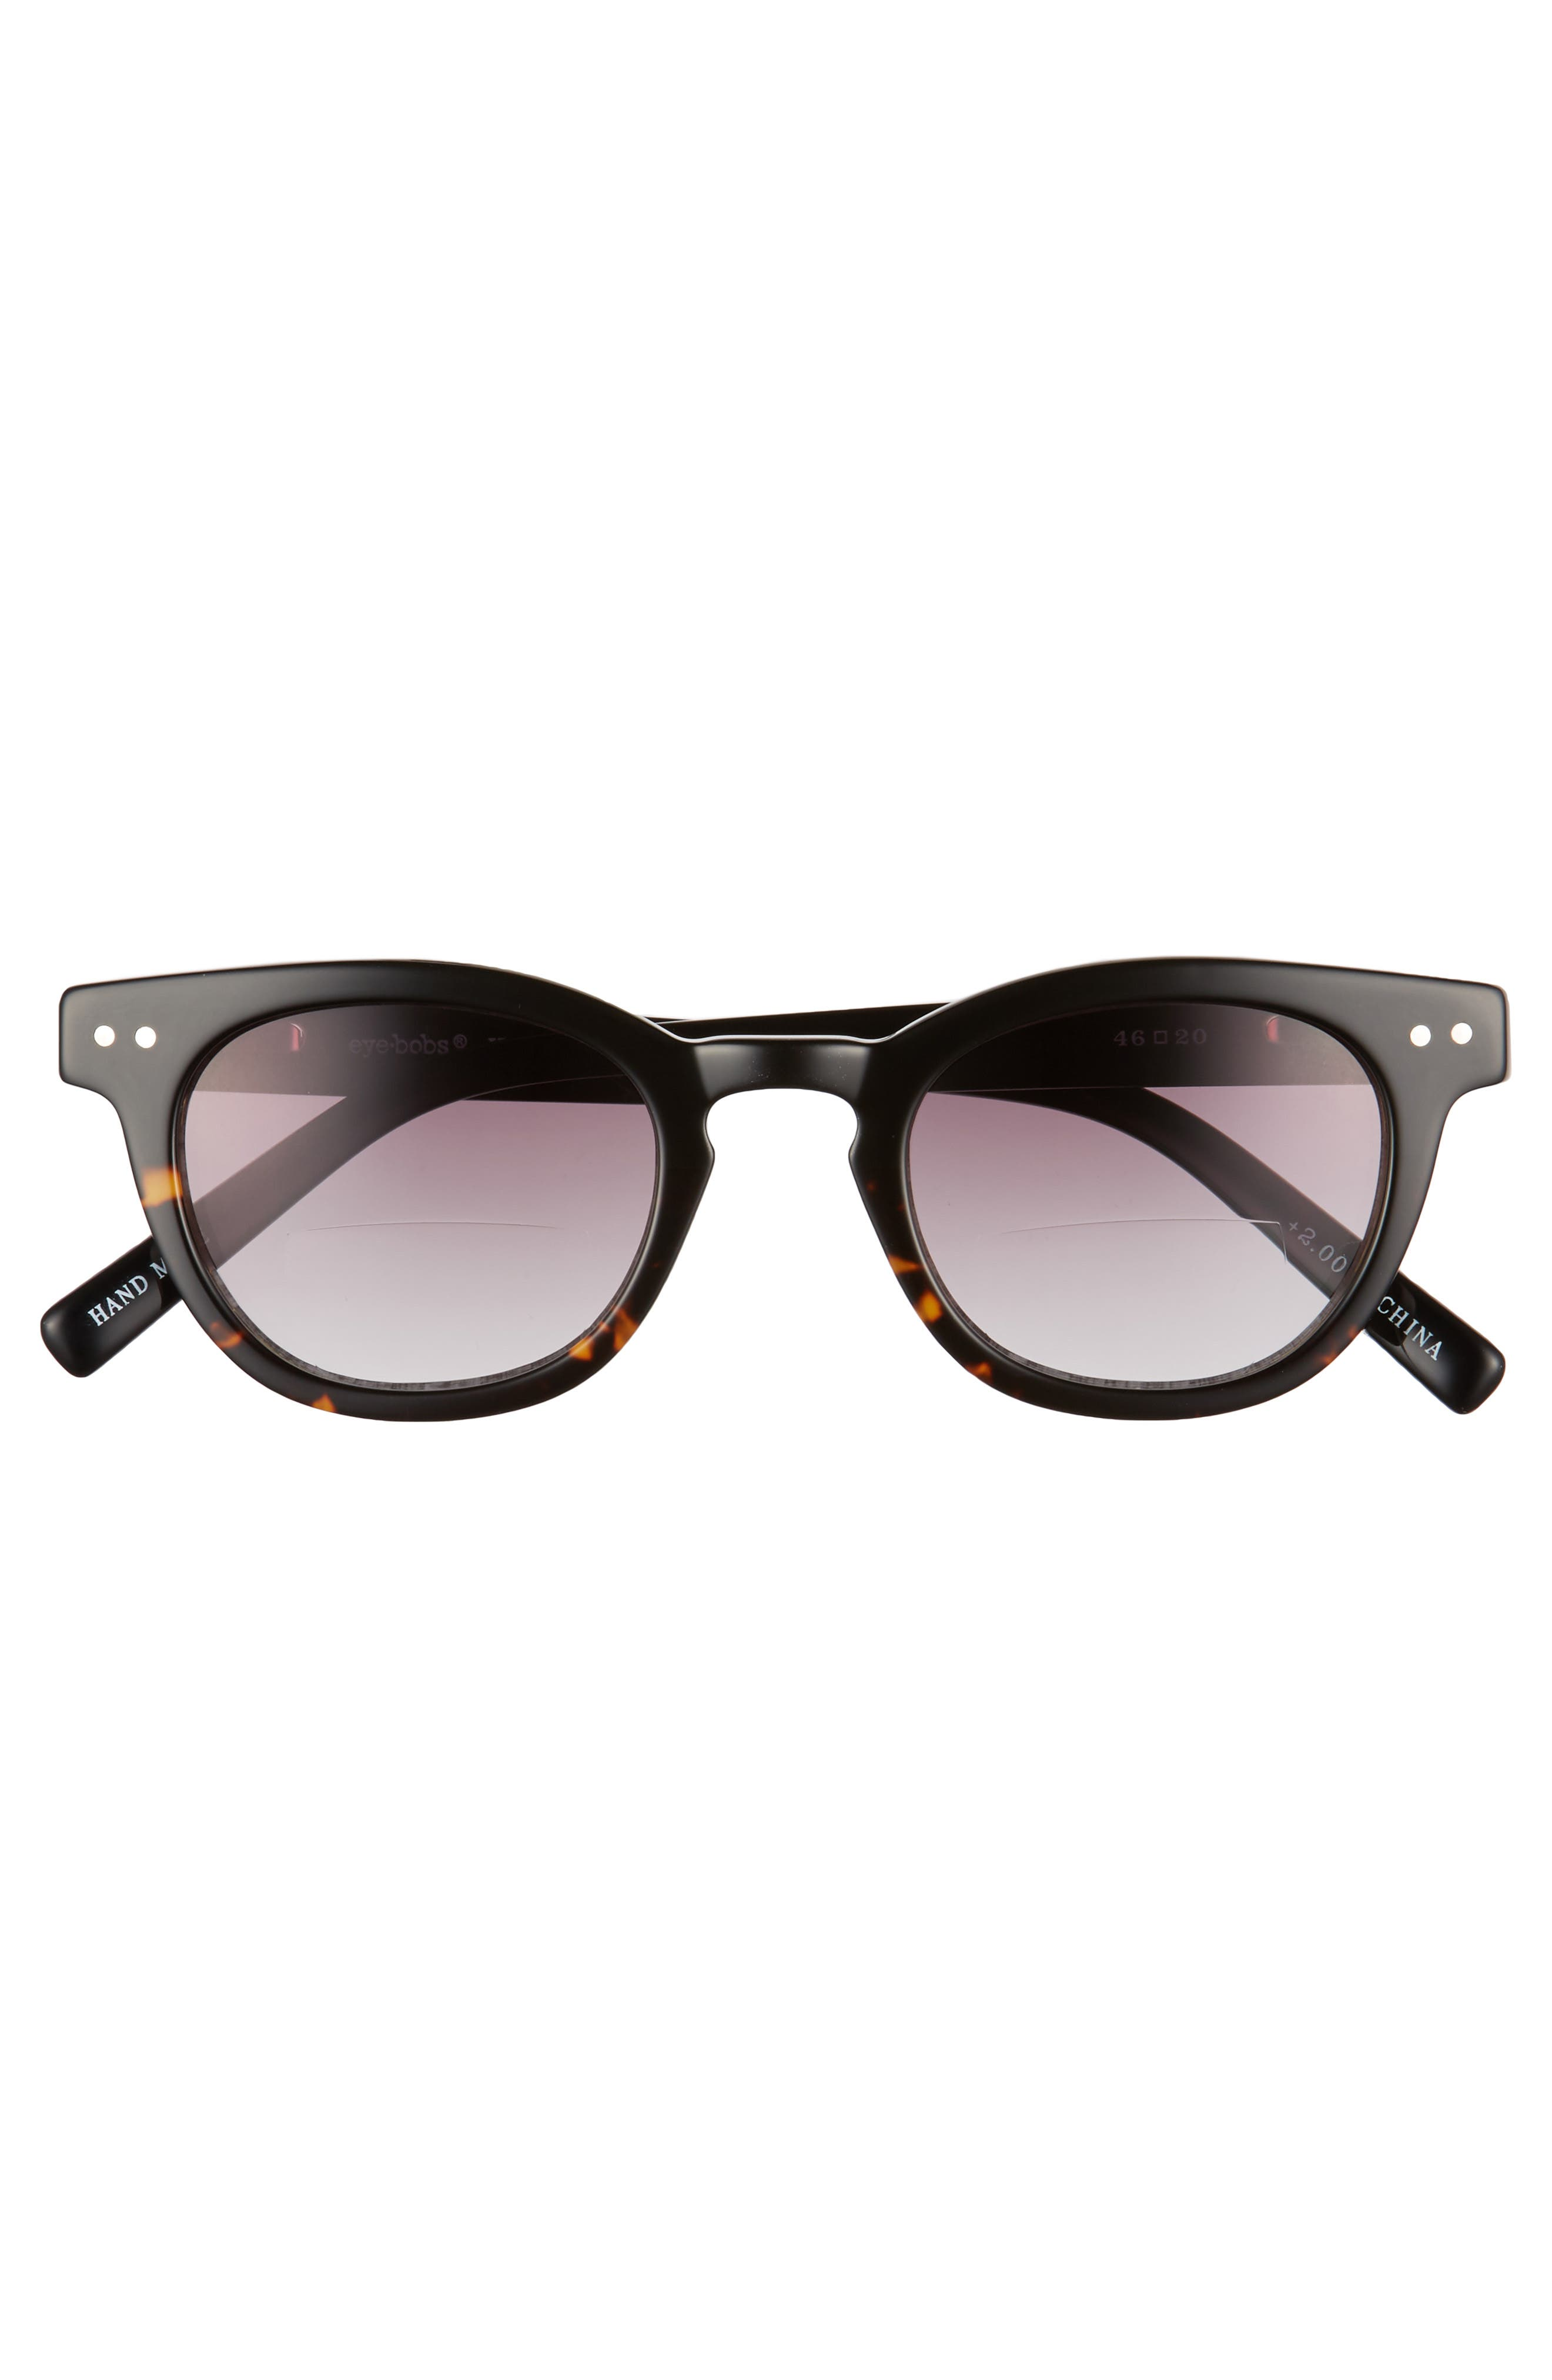 Laid 46mm Reading Sunglasses,                             Alternate thumbnail 2, color,                             TORTOISE WITH BLACK